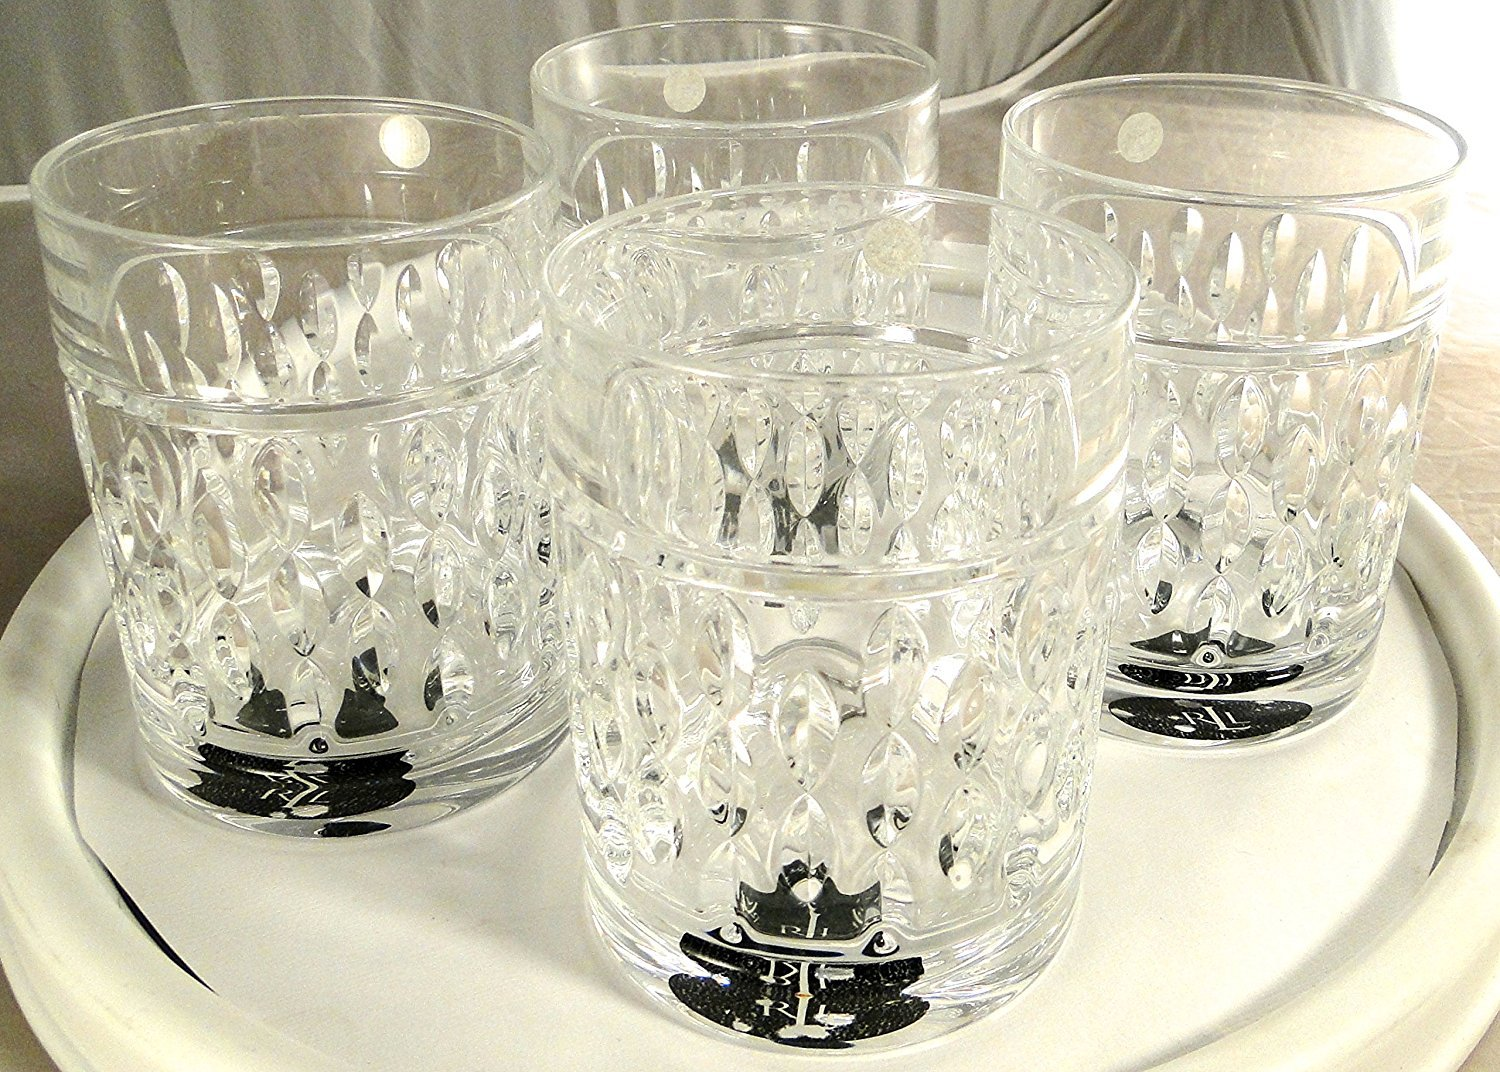 Ralph Lauren Aston Double Old Fashioned Cocktail Glasses German Lead Crystal Set of 4